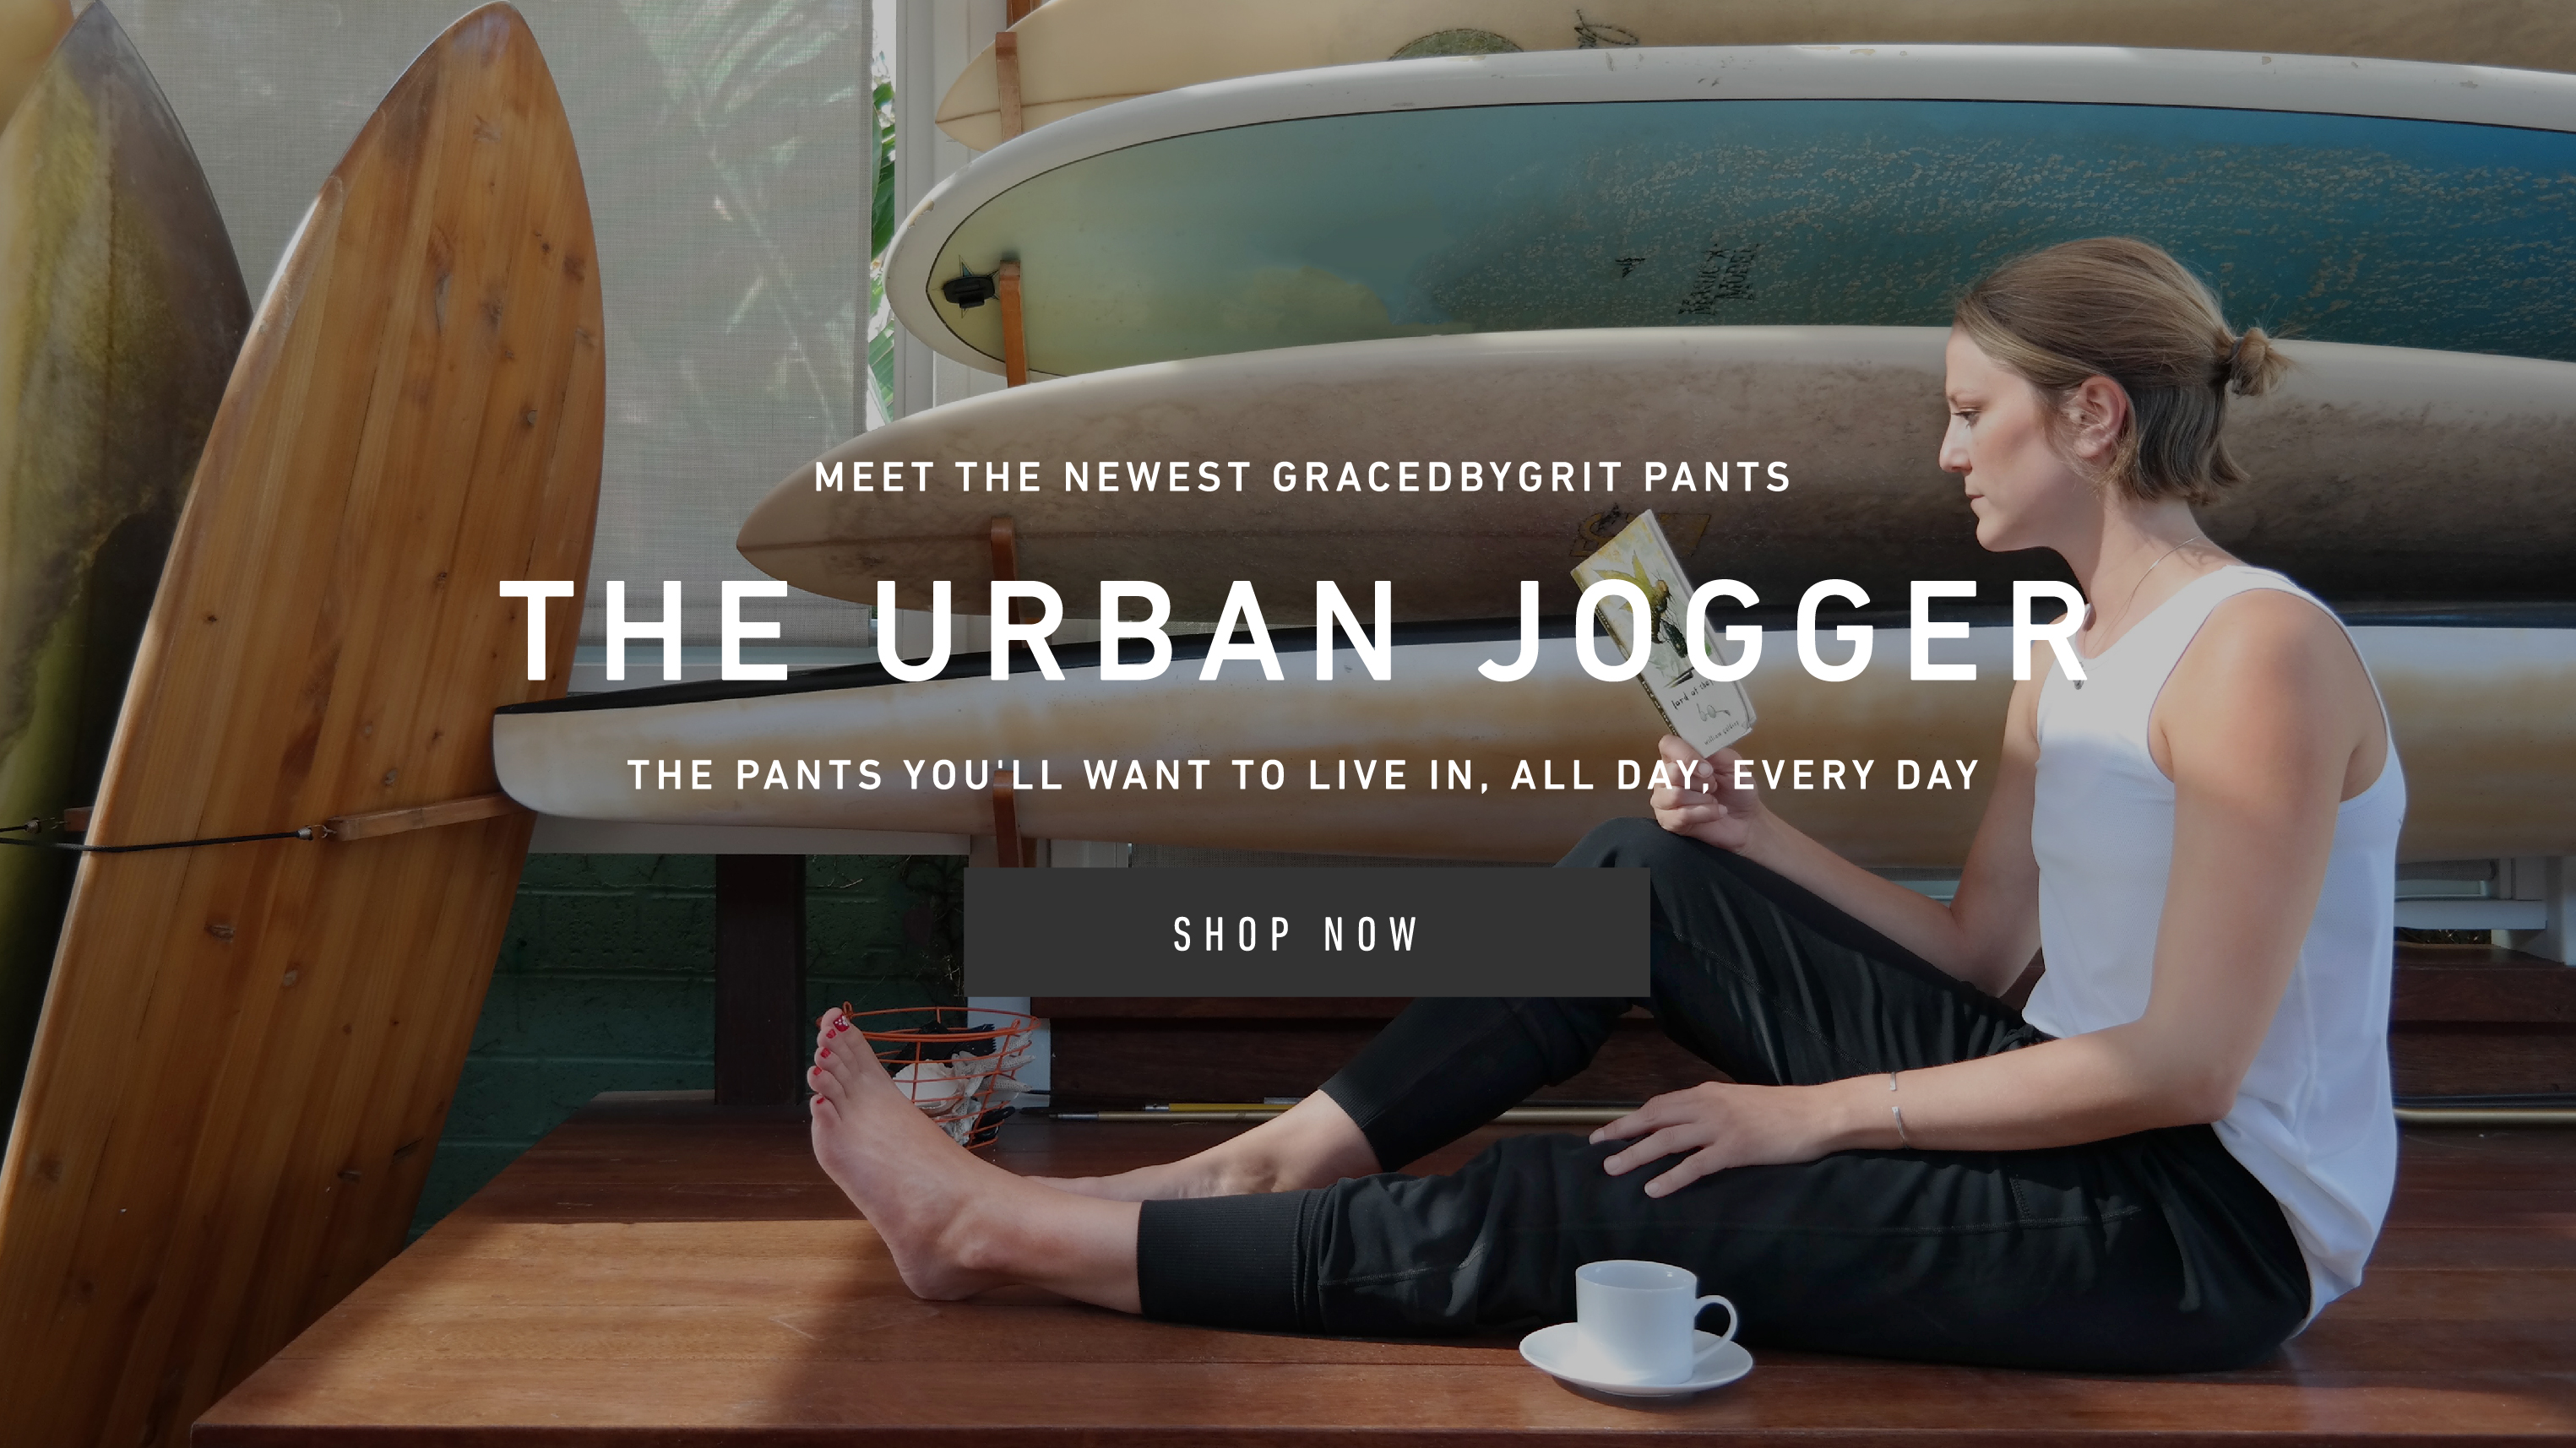 Meet the newest GRACEDBYGRIT pants: The Urban Jogger